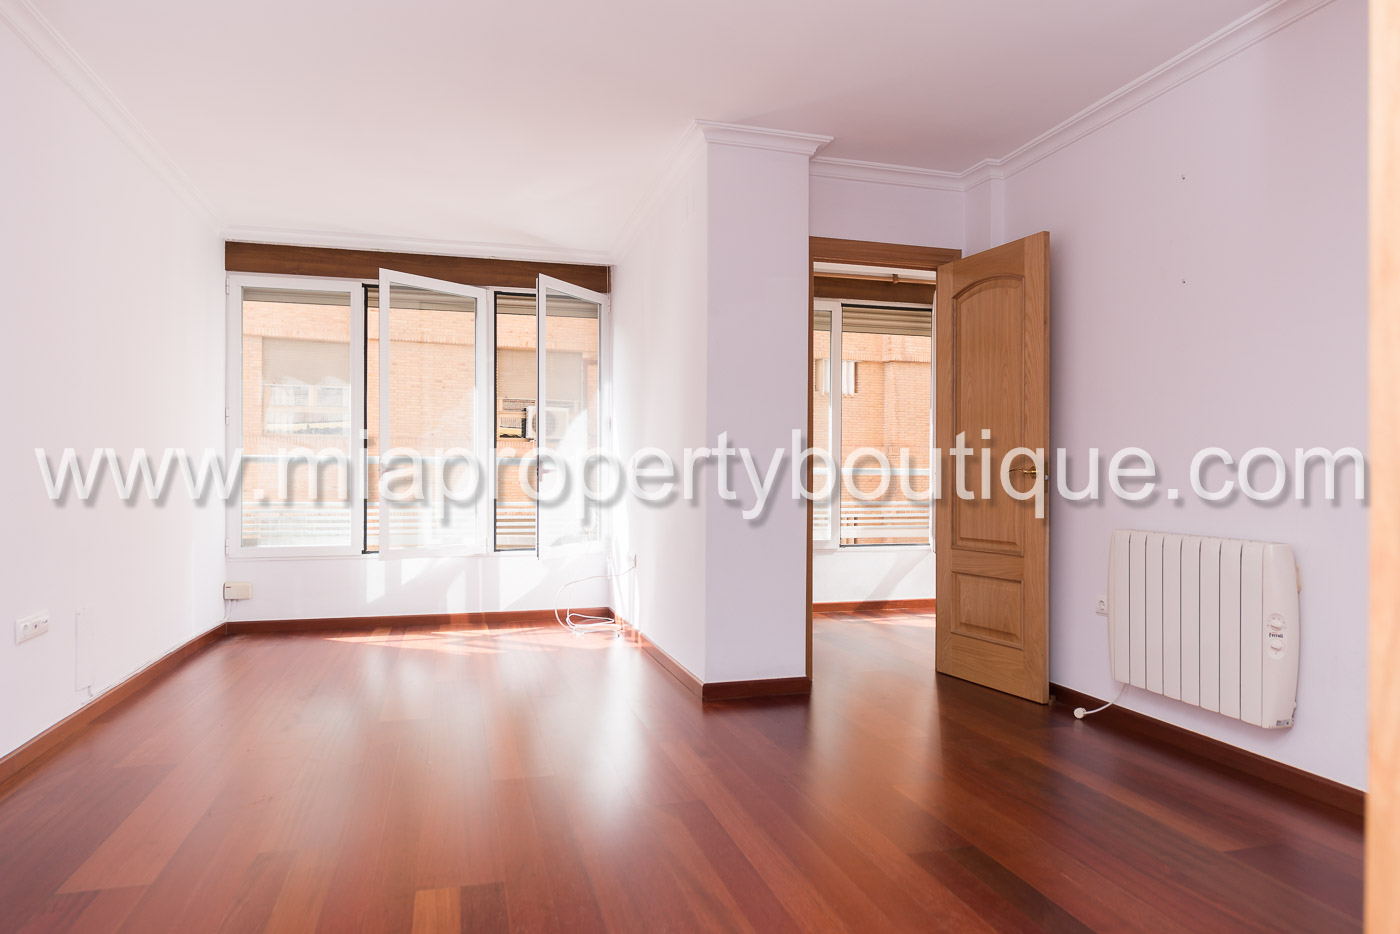 For Rent Spacious Central Apartment in Alicante City Centre